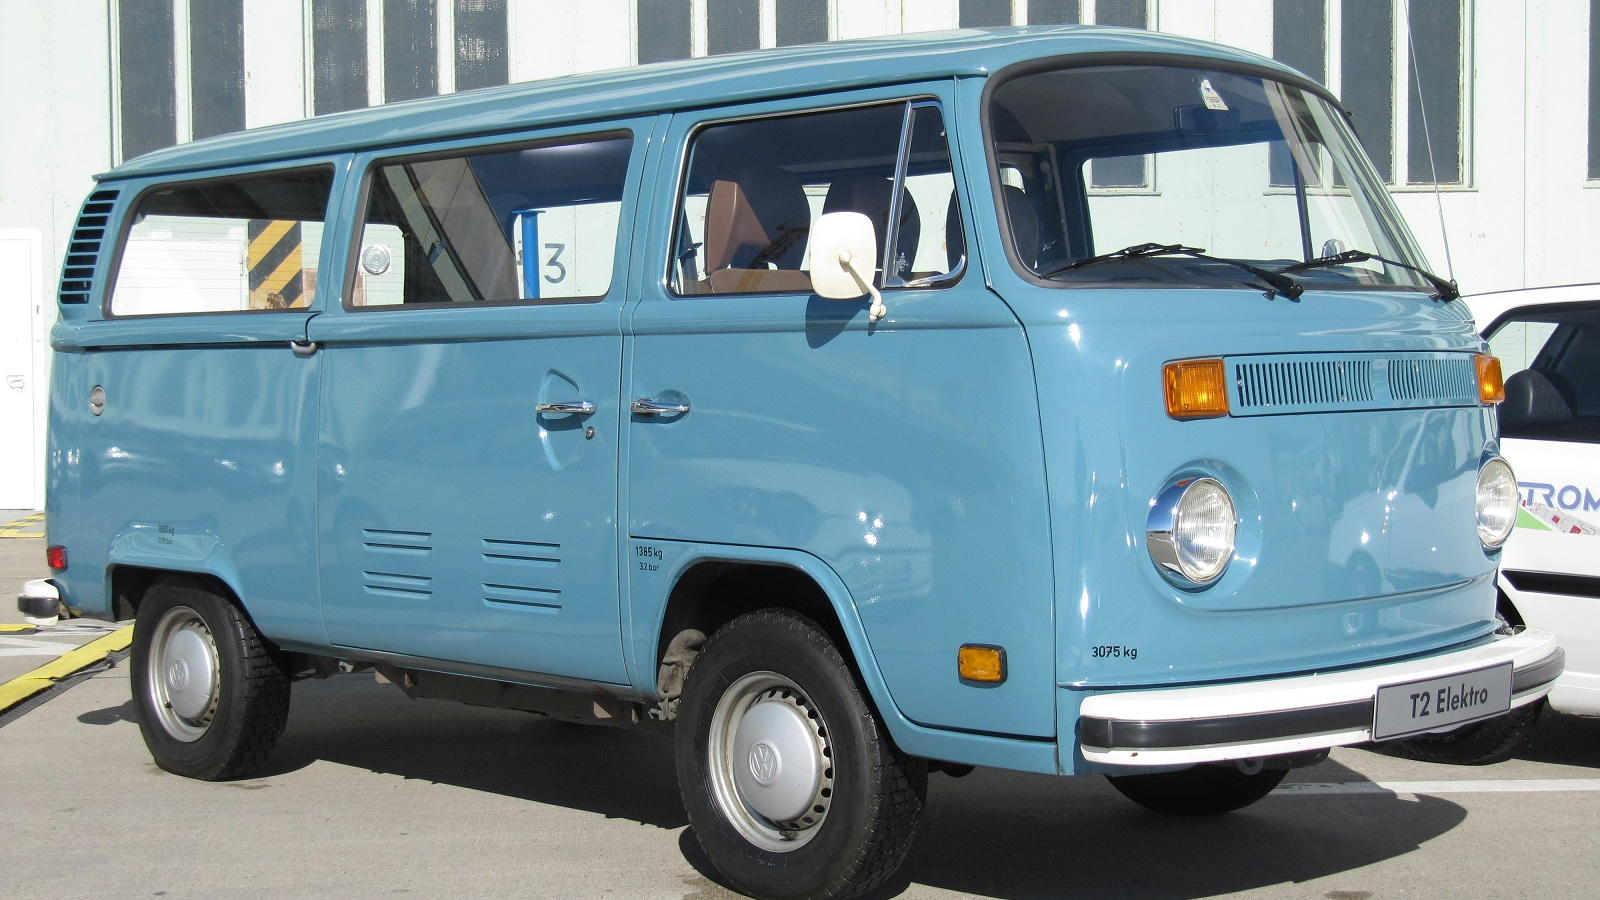 Volkswagen T2 Elektro, historic VW electric car at Tempelhof Airport, Berlin